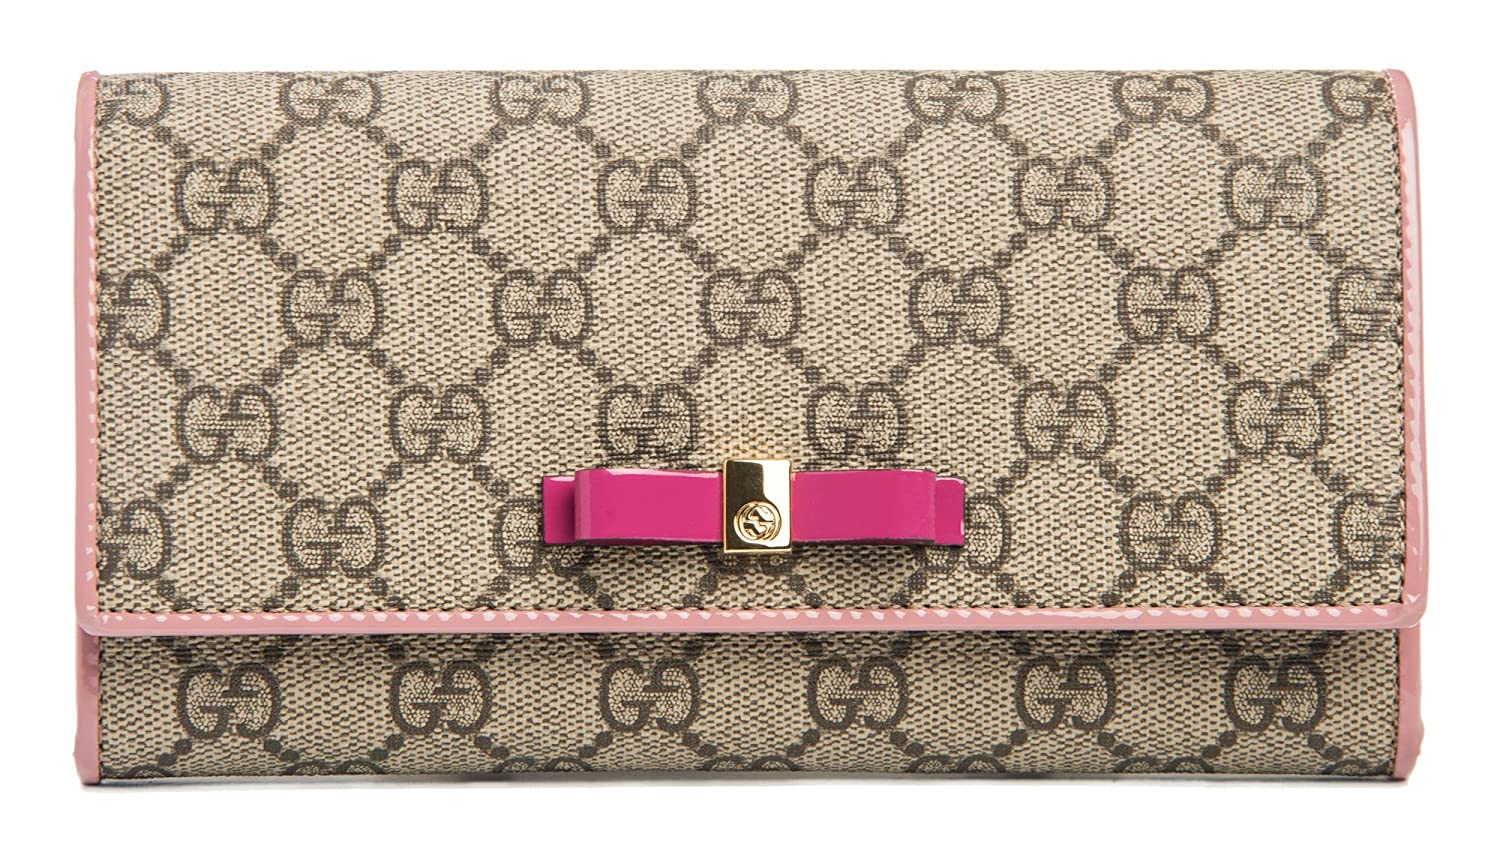 192574bfb70 Amazon.com  Gucci Beige Brown Signature Leather Wallet Guccissima style Box  New  493075  Shoes